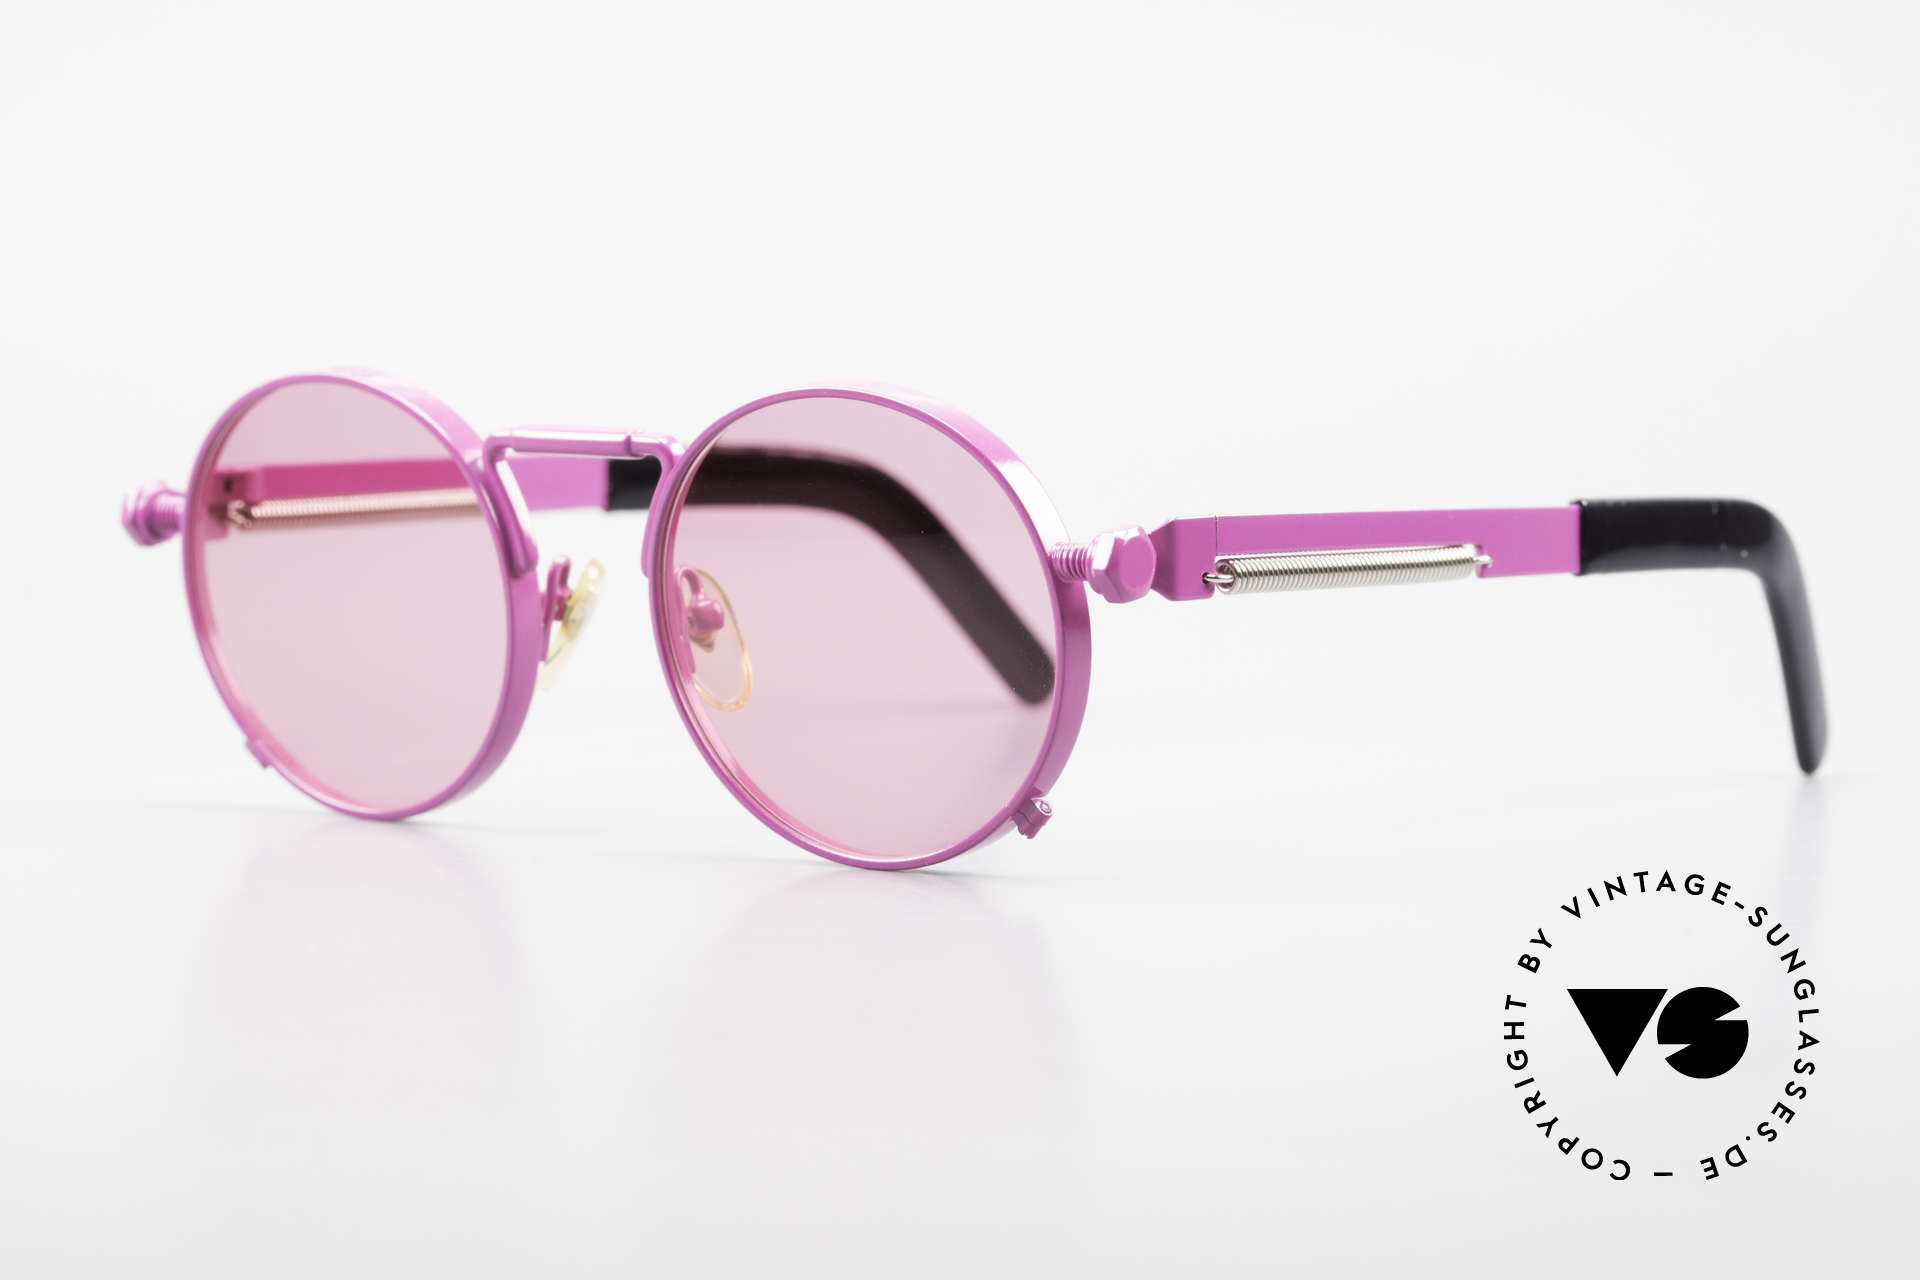 Jean Paul Gaultier 56-8171 Customized Pink Edition, incredible sturdy bridge and hinges (You must feel this!), Made for Men and Women